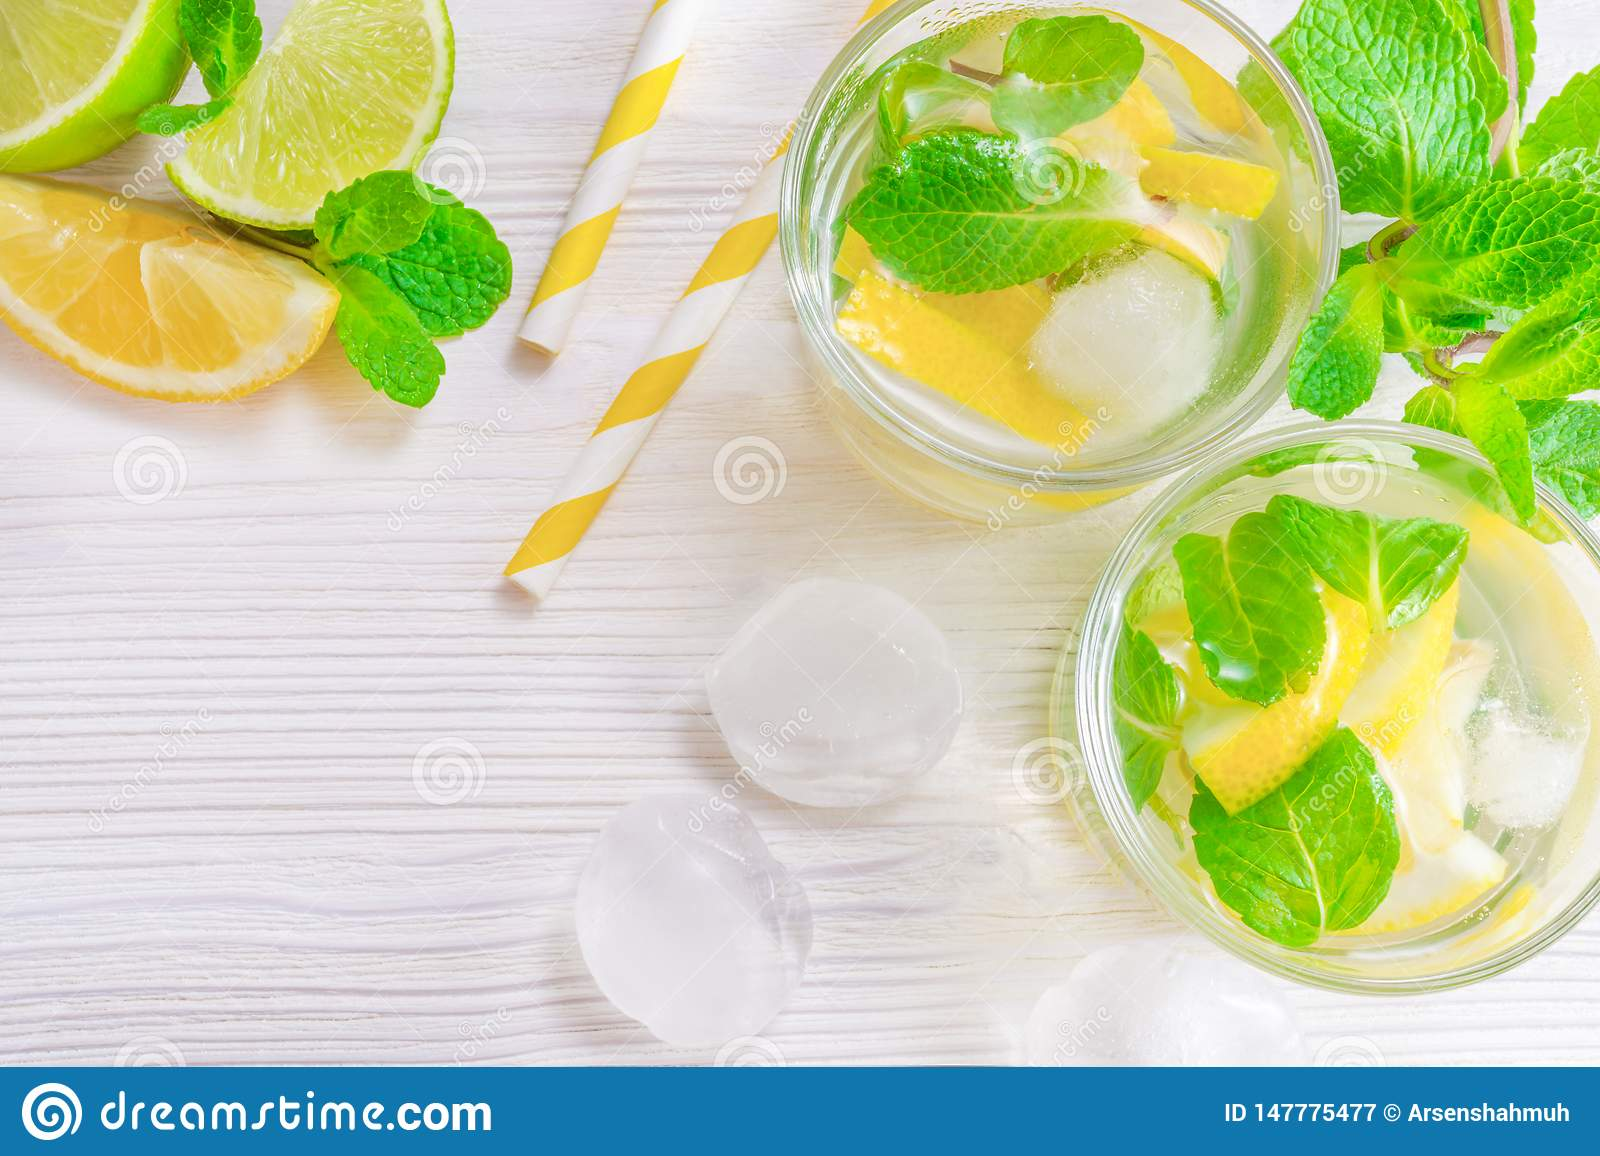 Refreshing summer drink mojito with lime, lemon and mint, with ice cubes on white wooden background. Flat-lay, top view